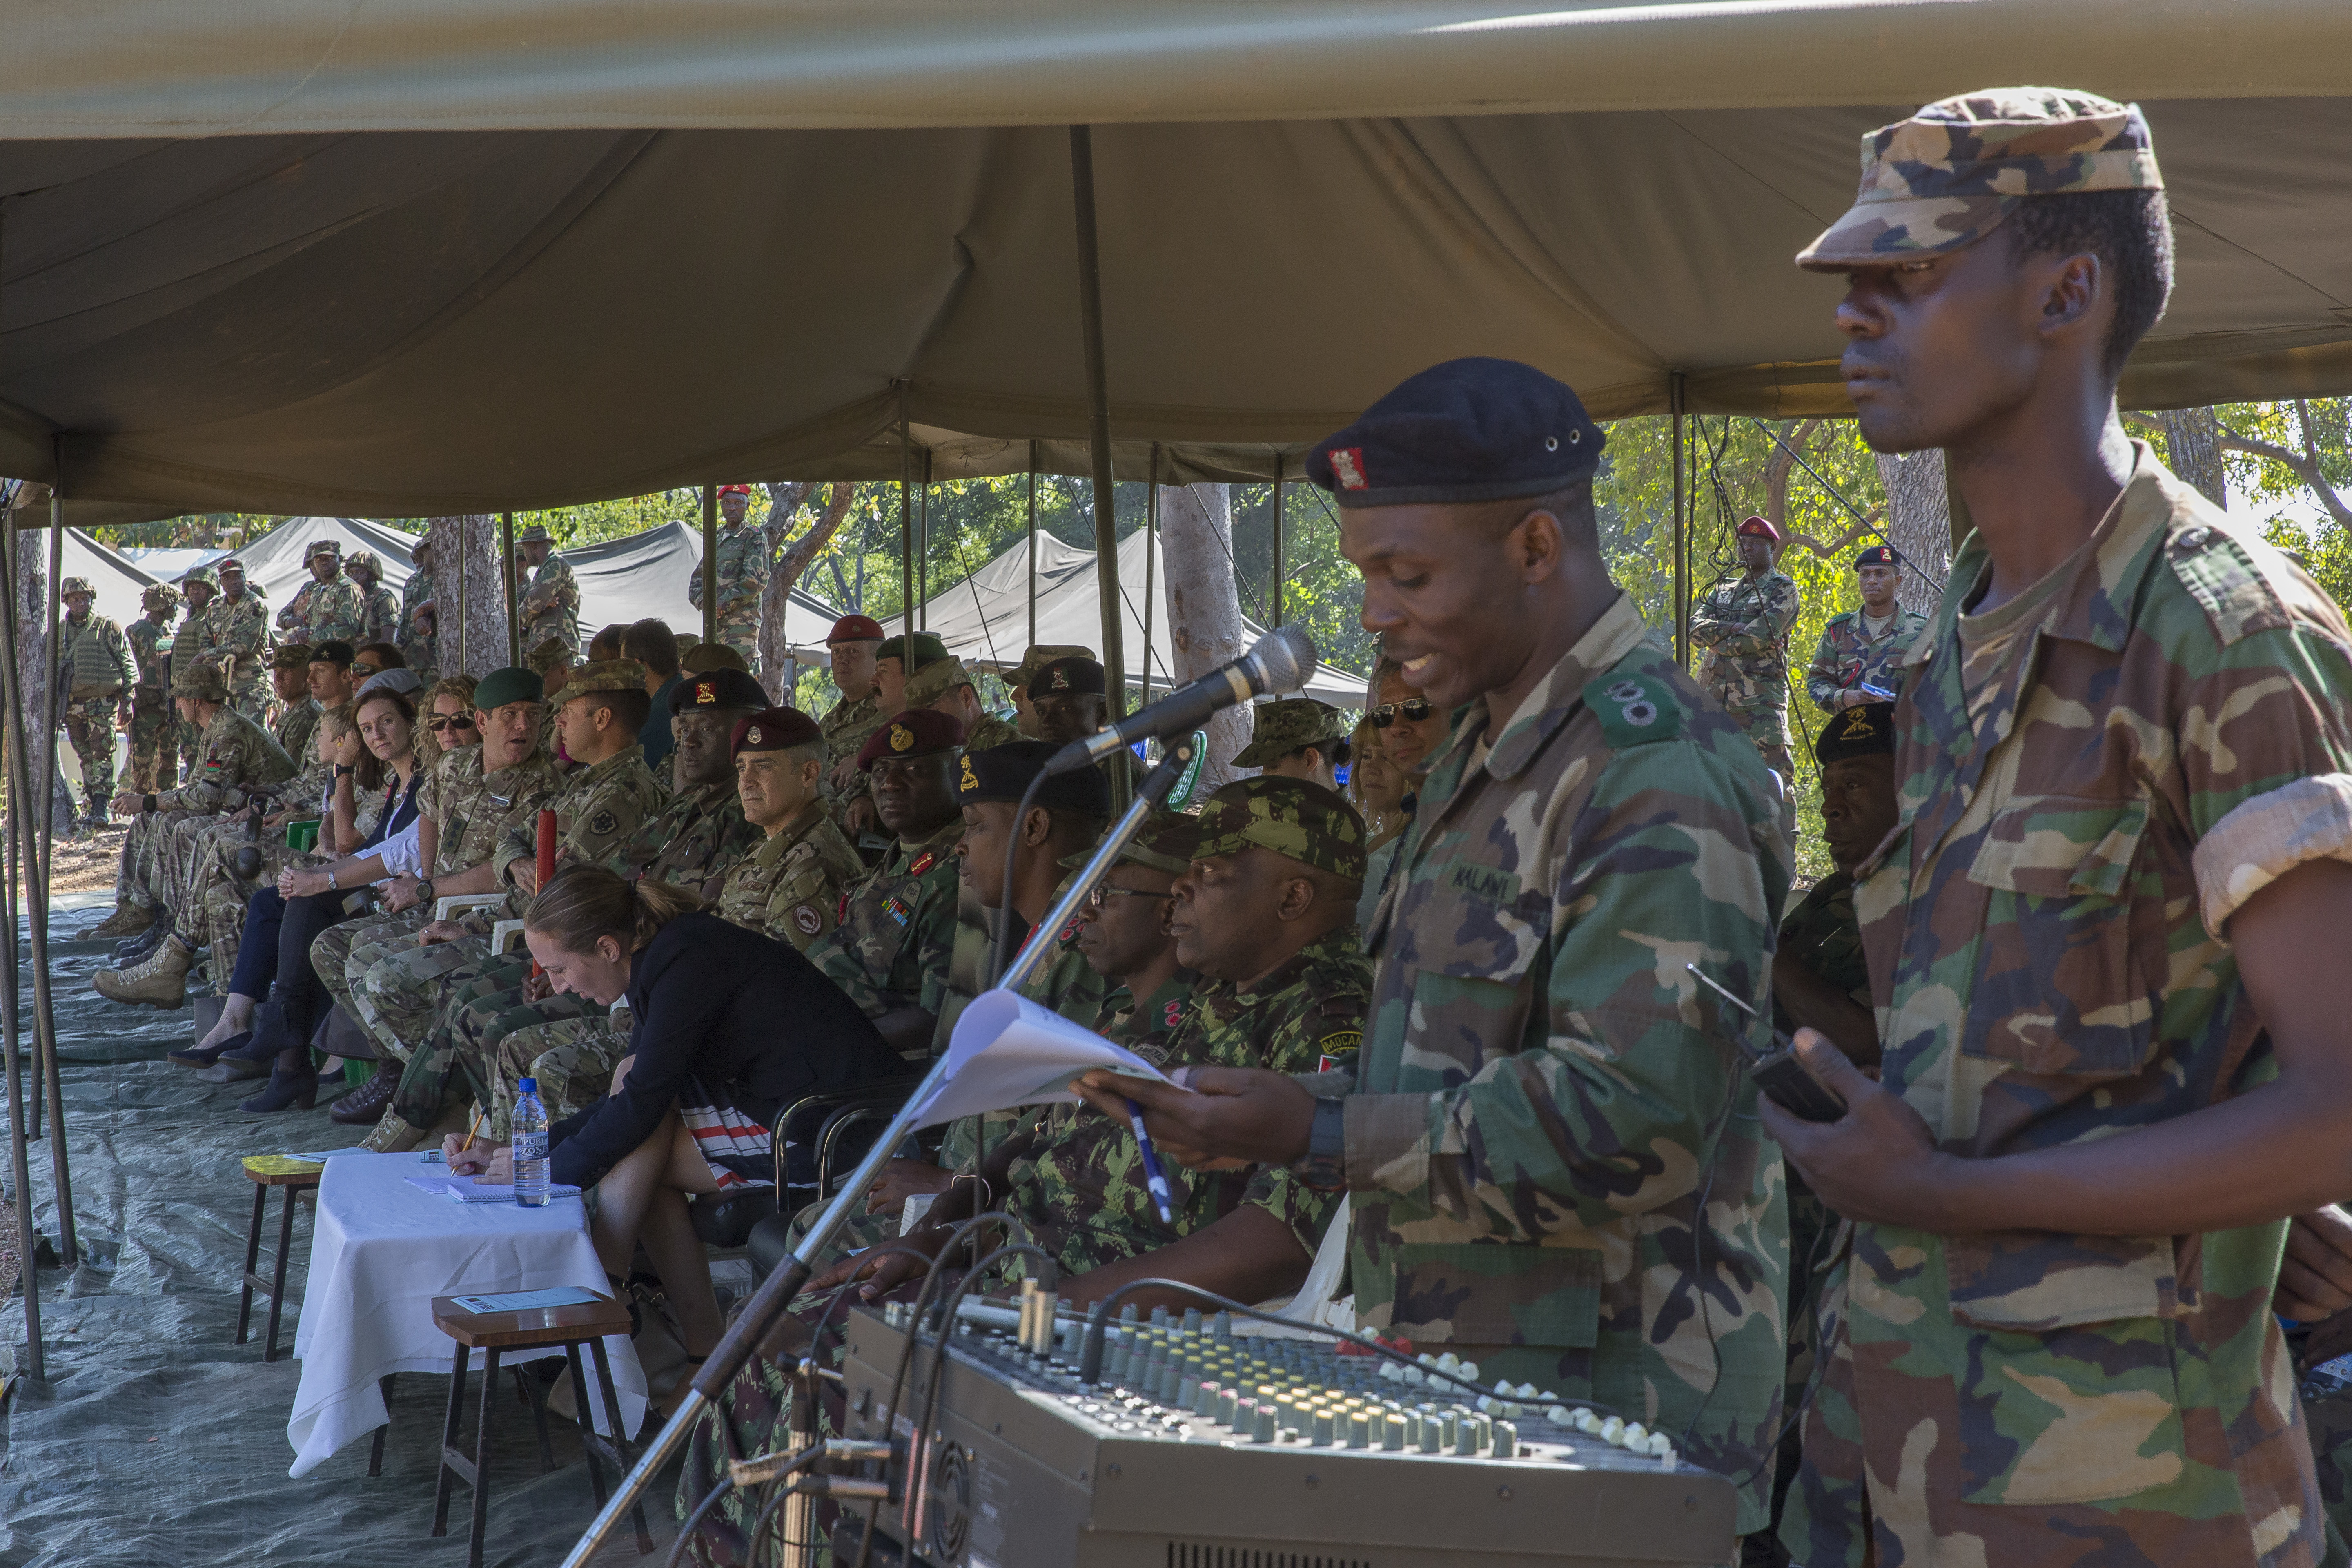 U.S. Africa Command Senior Enlisted Leader Command Chief Master Sgt. Ramon Colon-Lopez sits with Malawi Defence Force Leaders and observes MDF soldiers as they perform their final exercise at the Malawi Battalion Training Site, May 31, 2018. Colon-Lopez travelled to Malawi to meet with the Malawi Defence Force, engaging with both senior officer and enlisted leadership as part of a three-day tour. The visit included a follow-up on issues addressed by the MDF during the Africa Senior Enlisted Leader Conference in November 2017, as well as assess the MDF's capability to train and sustain Peace Keeping Operations Forces.